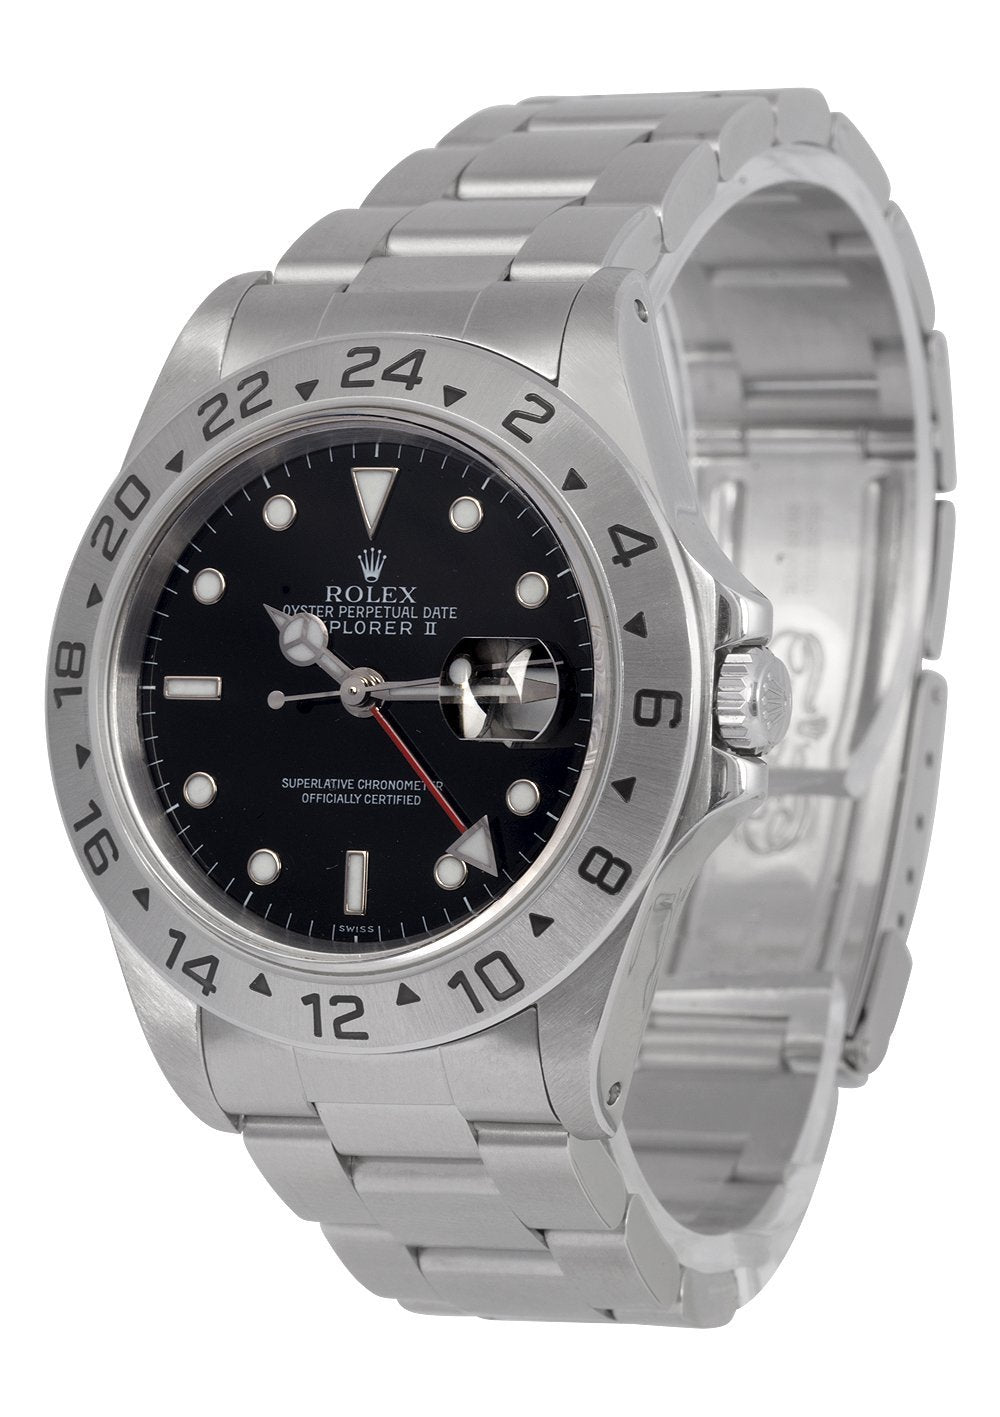 b11280c4988 Rolex Explorer II Watch Black Dial Ref: 16570 With Papers (Swiss Only)